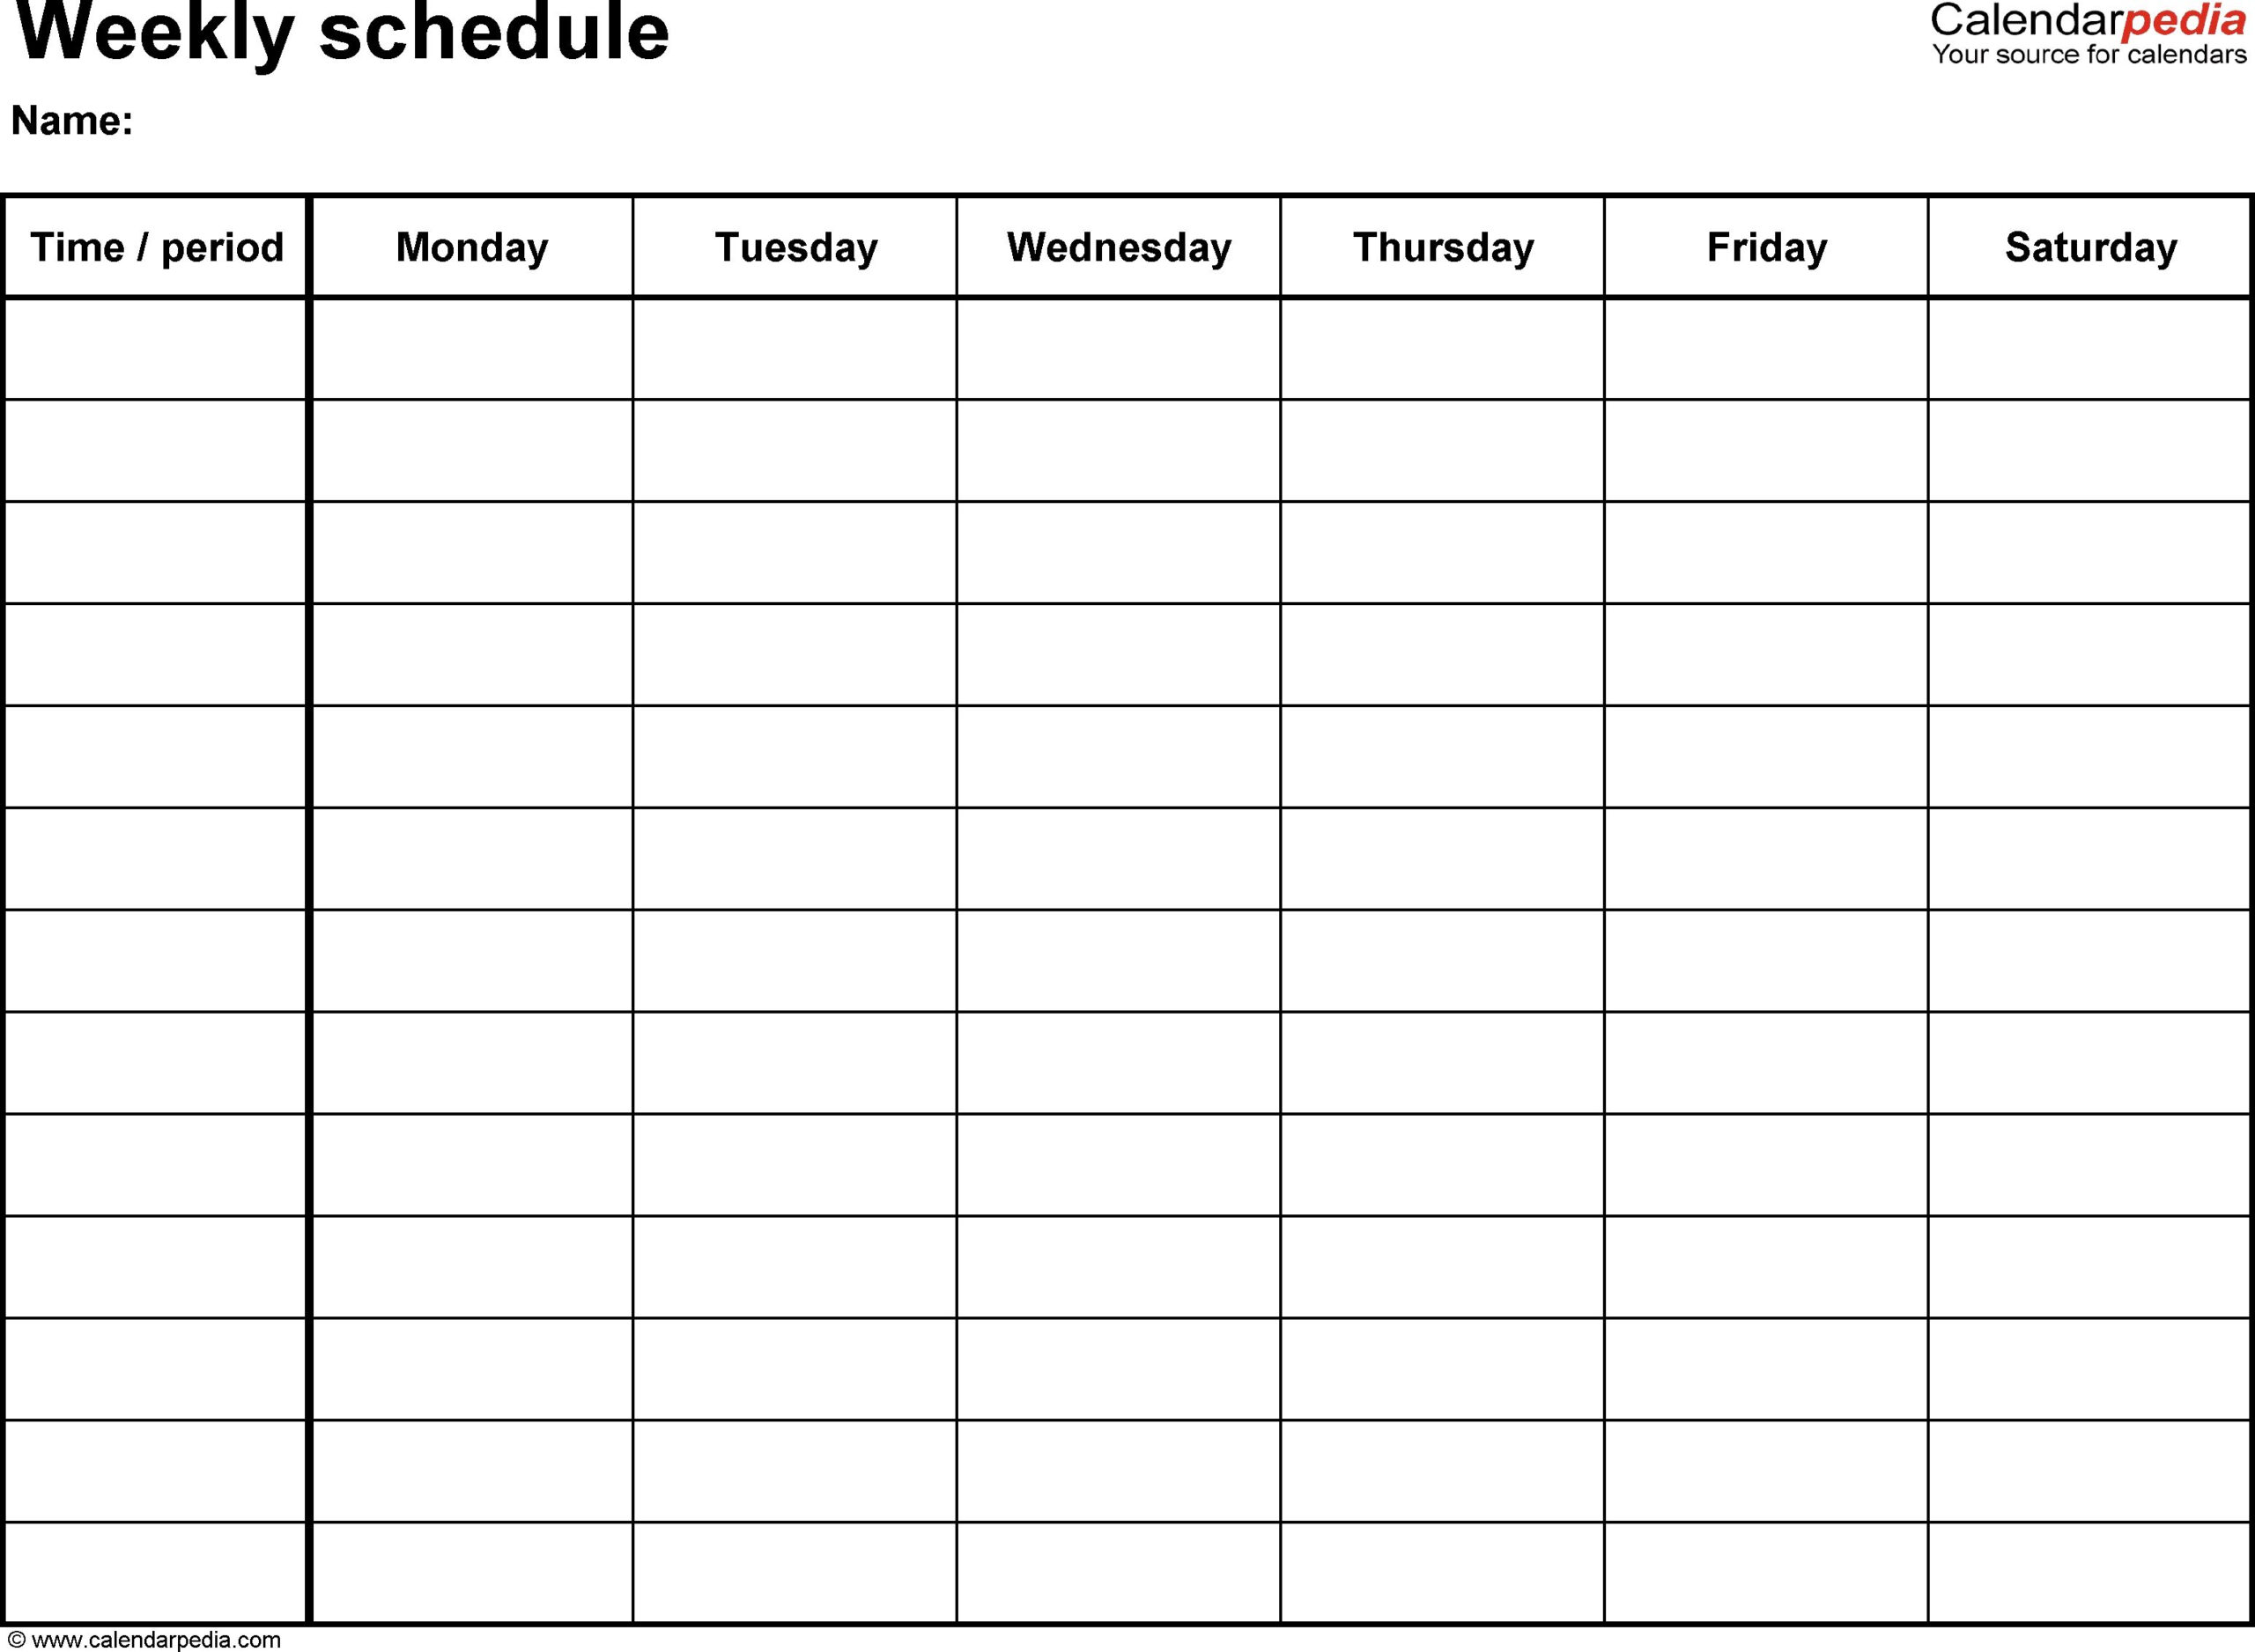 Fillable Weekly Calendar Printable Weekly Calendar With 15